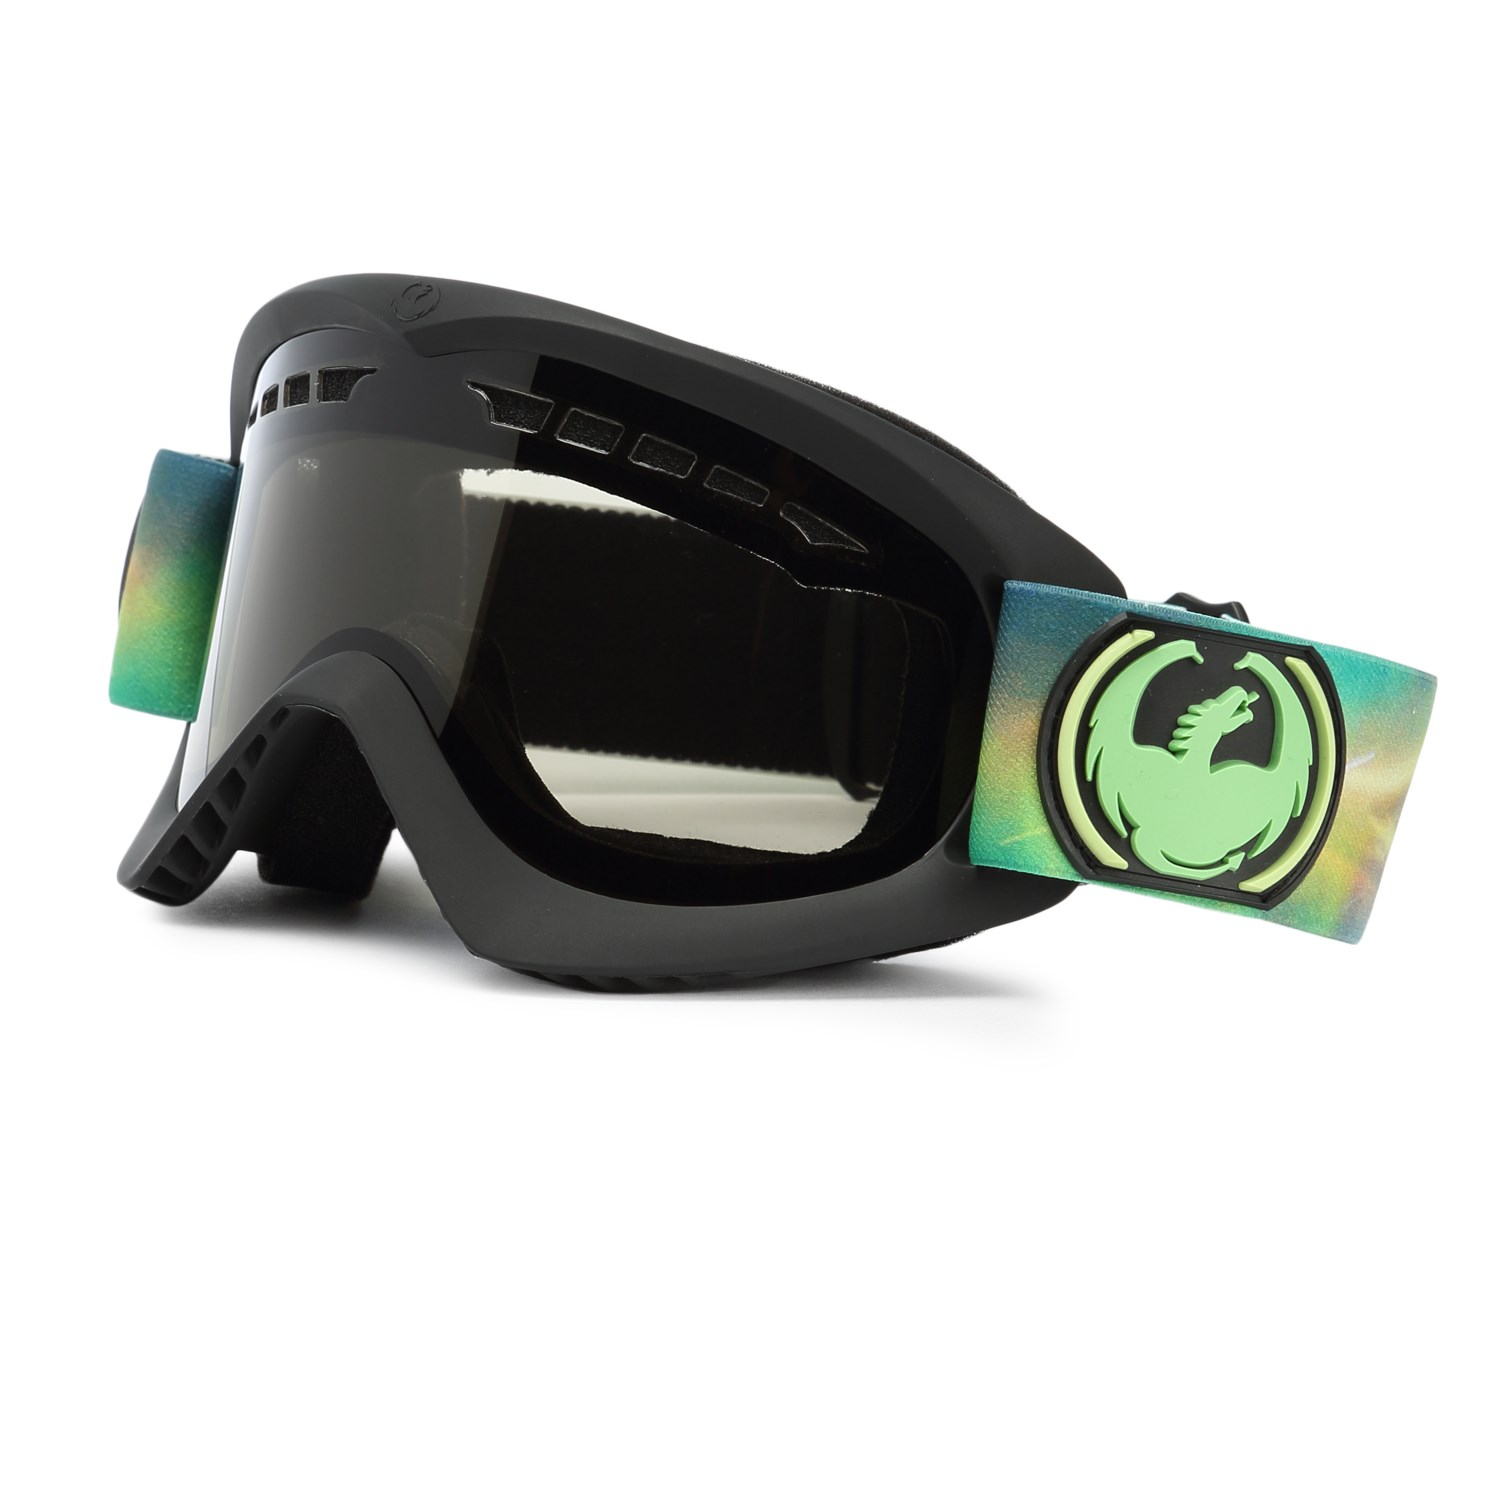 617640b591d Dragon DX Goggles